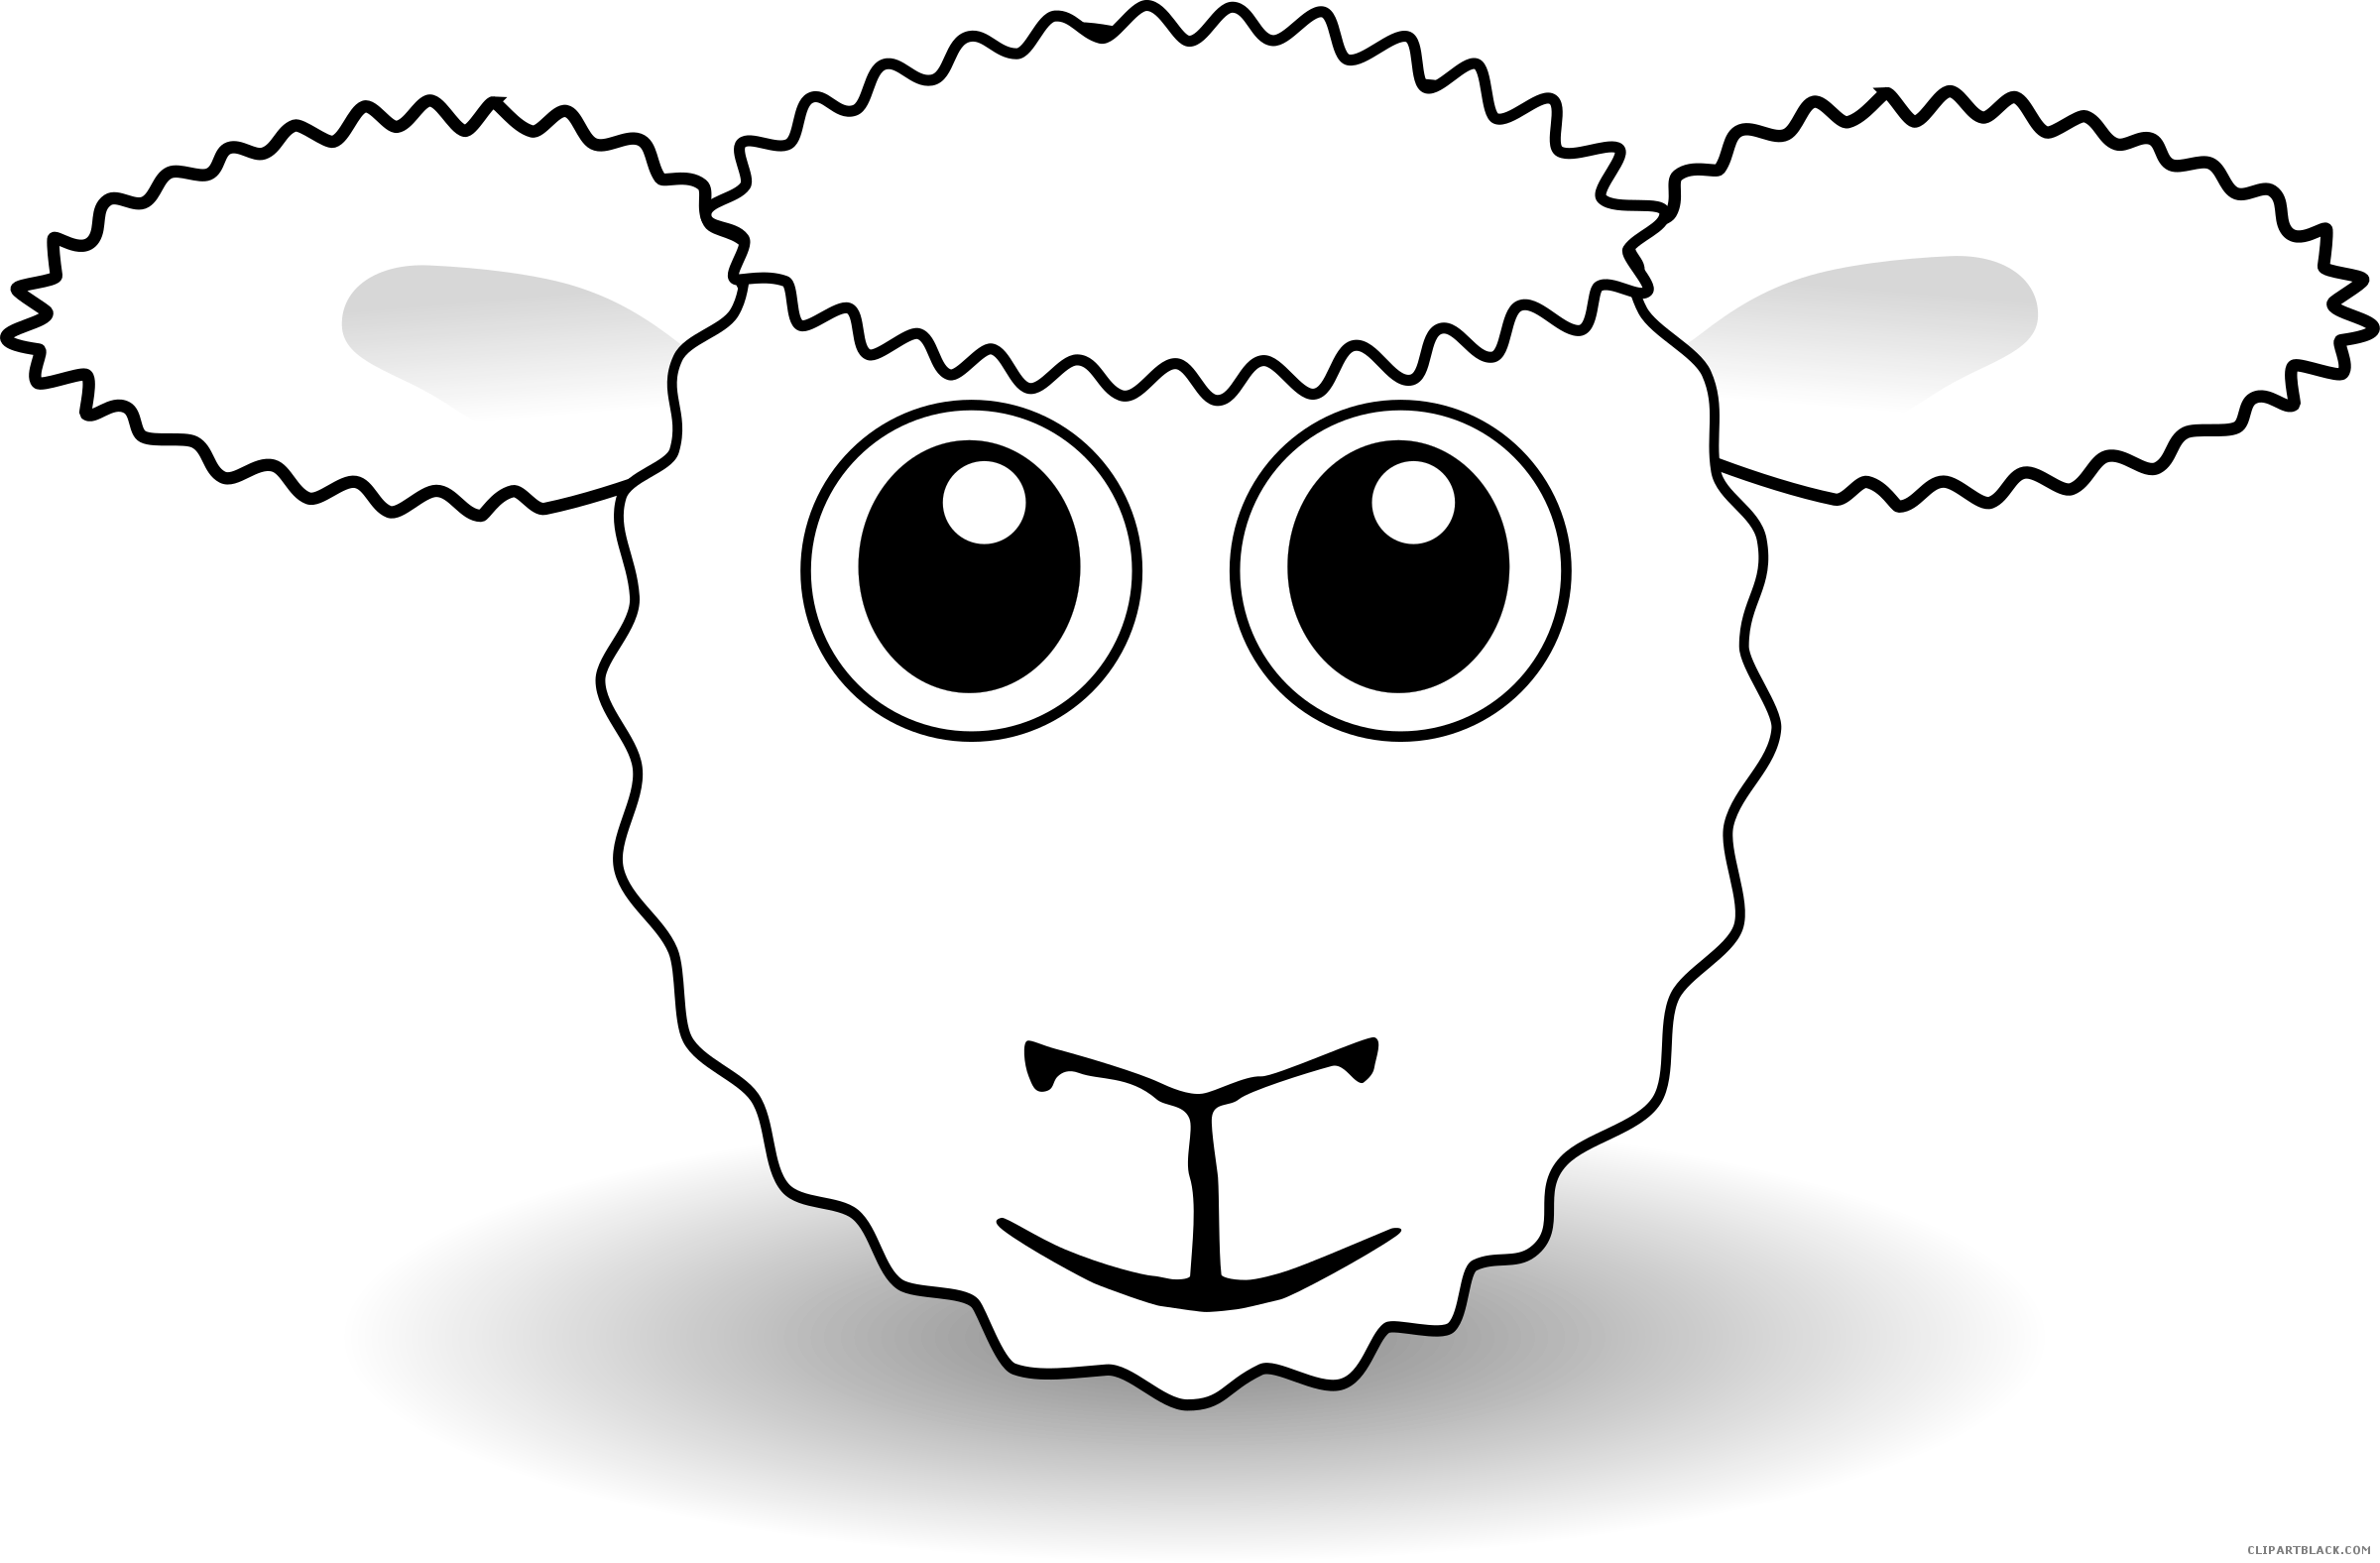 Cartoon clipartblack com animal. Sheep clipart sheep drawing